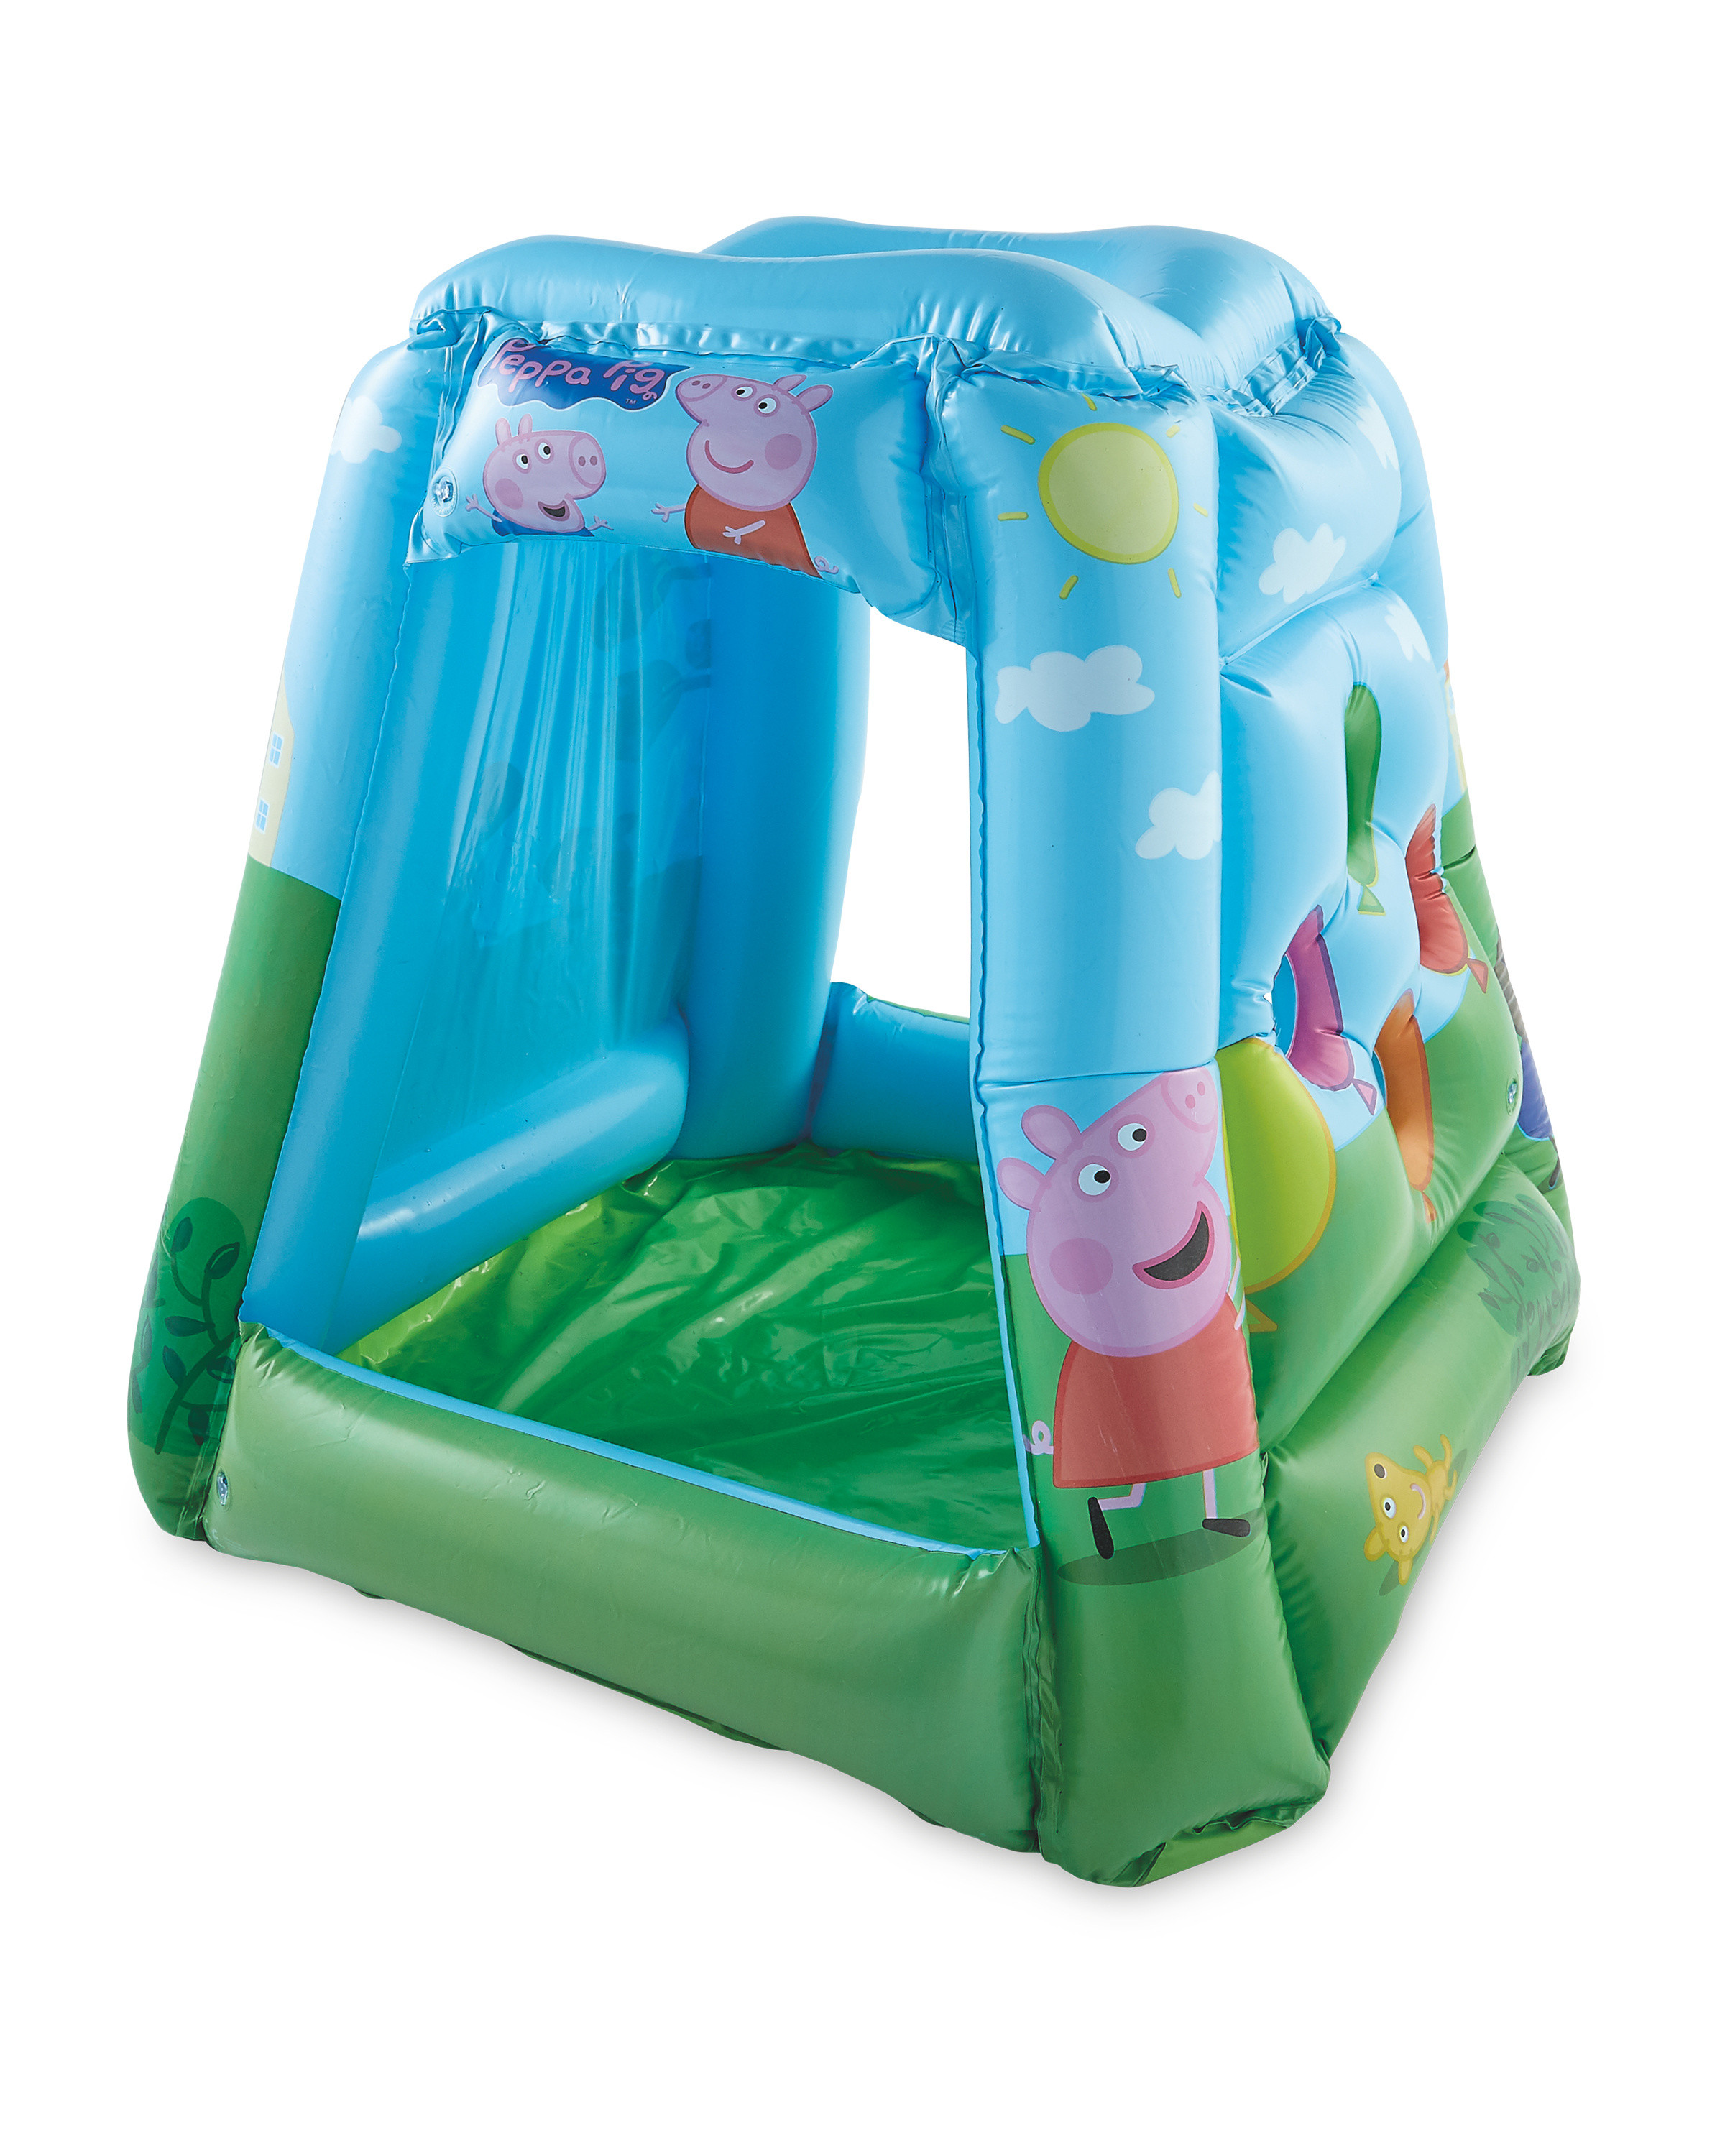 Peppa Pig Inflatable Ball Pit